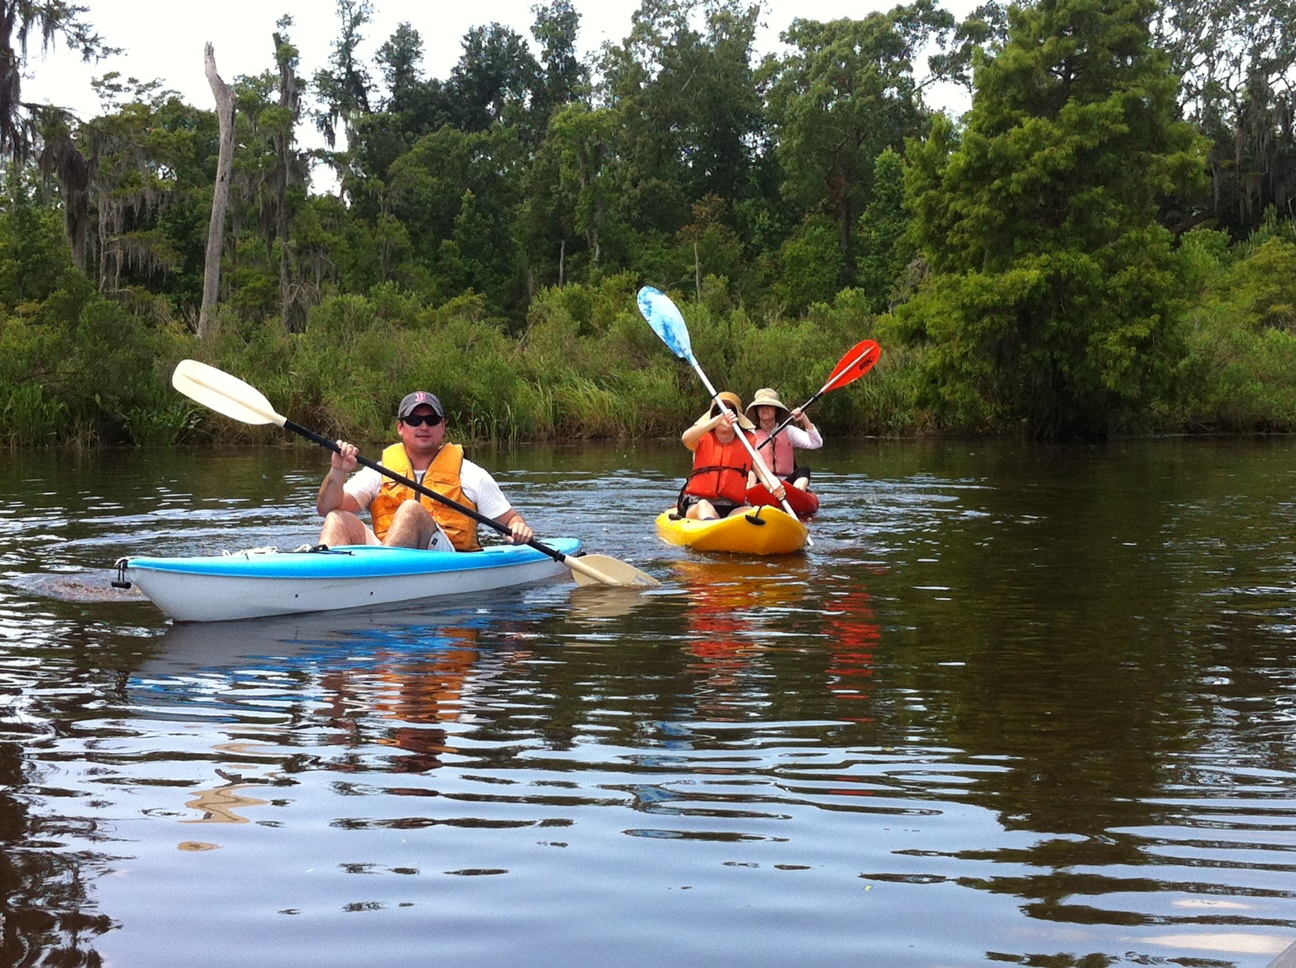 Chasing alligators on our family kayak trip to FontainebleauState Park